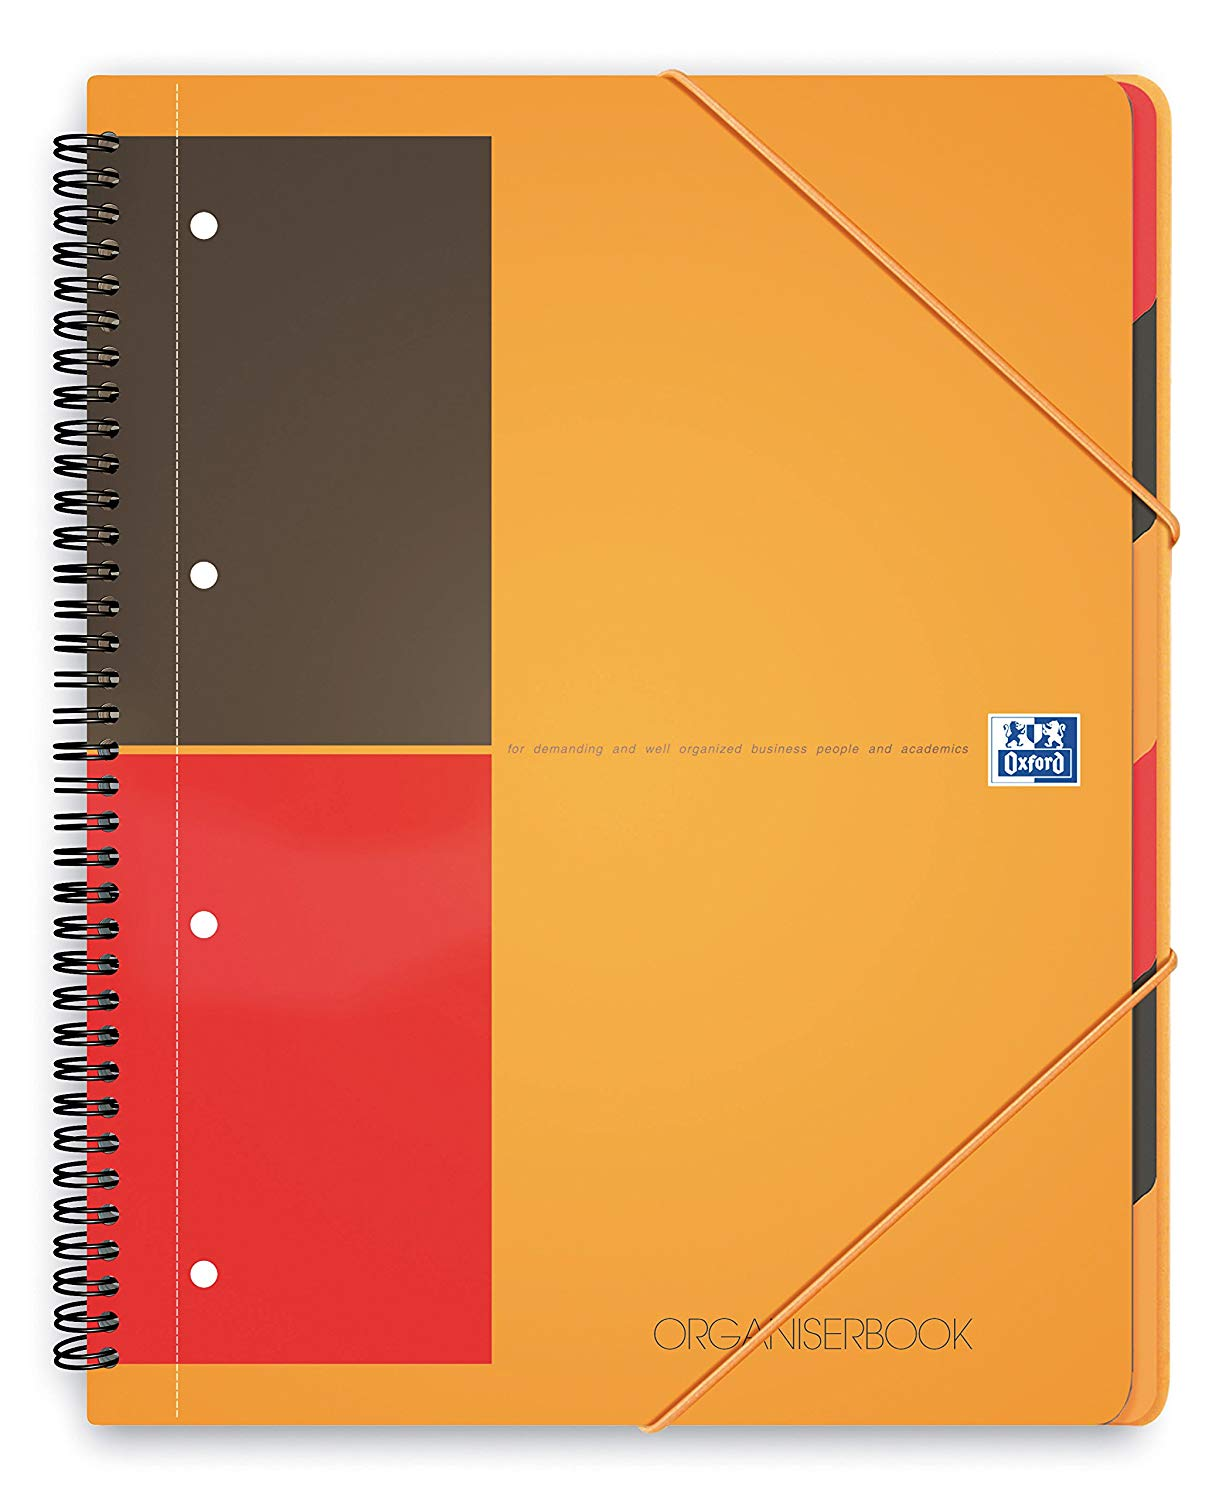 Caiet cu spirala A4+, OXFORD International Organiserbook, 80 file-80g/mp, 4 perf., coperta PP - dict